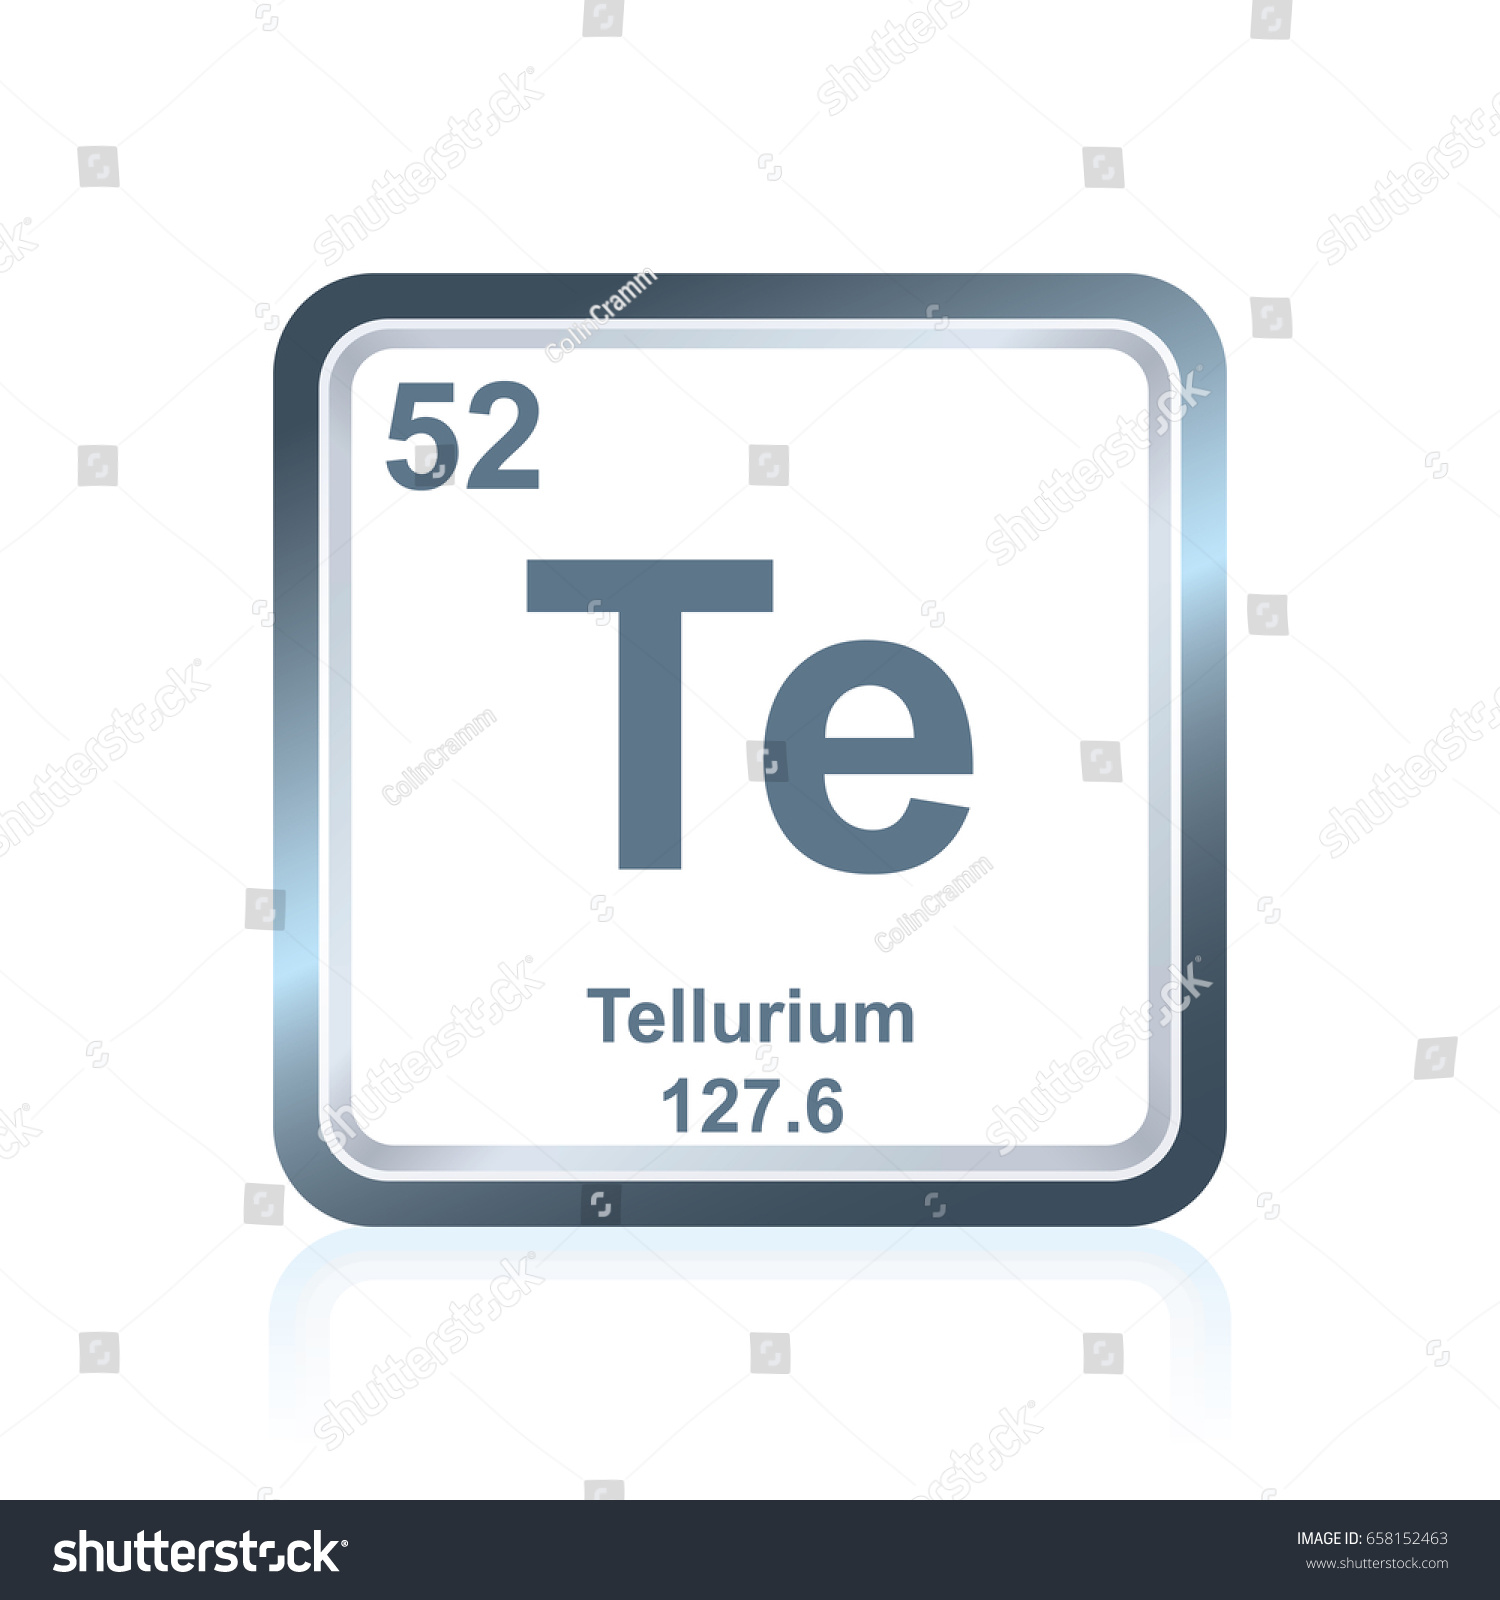 Tellurium on the periodic table images periodic table images symbol chemical element tellurium seen on stock vector 658152463 symbol of chemical element tellurium as seen gamestrikefo Choice Image